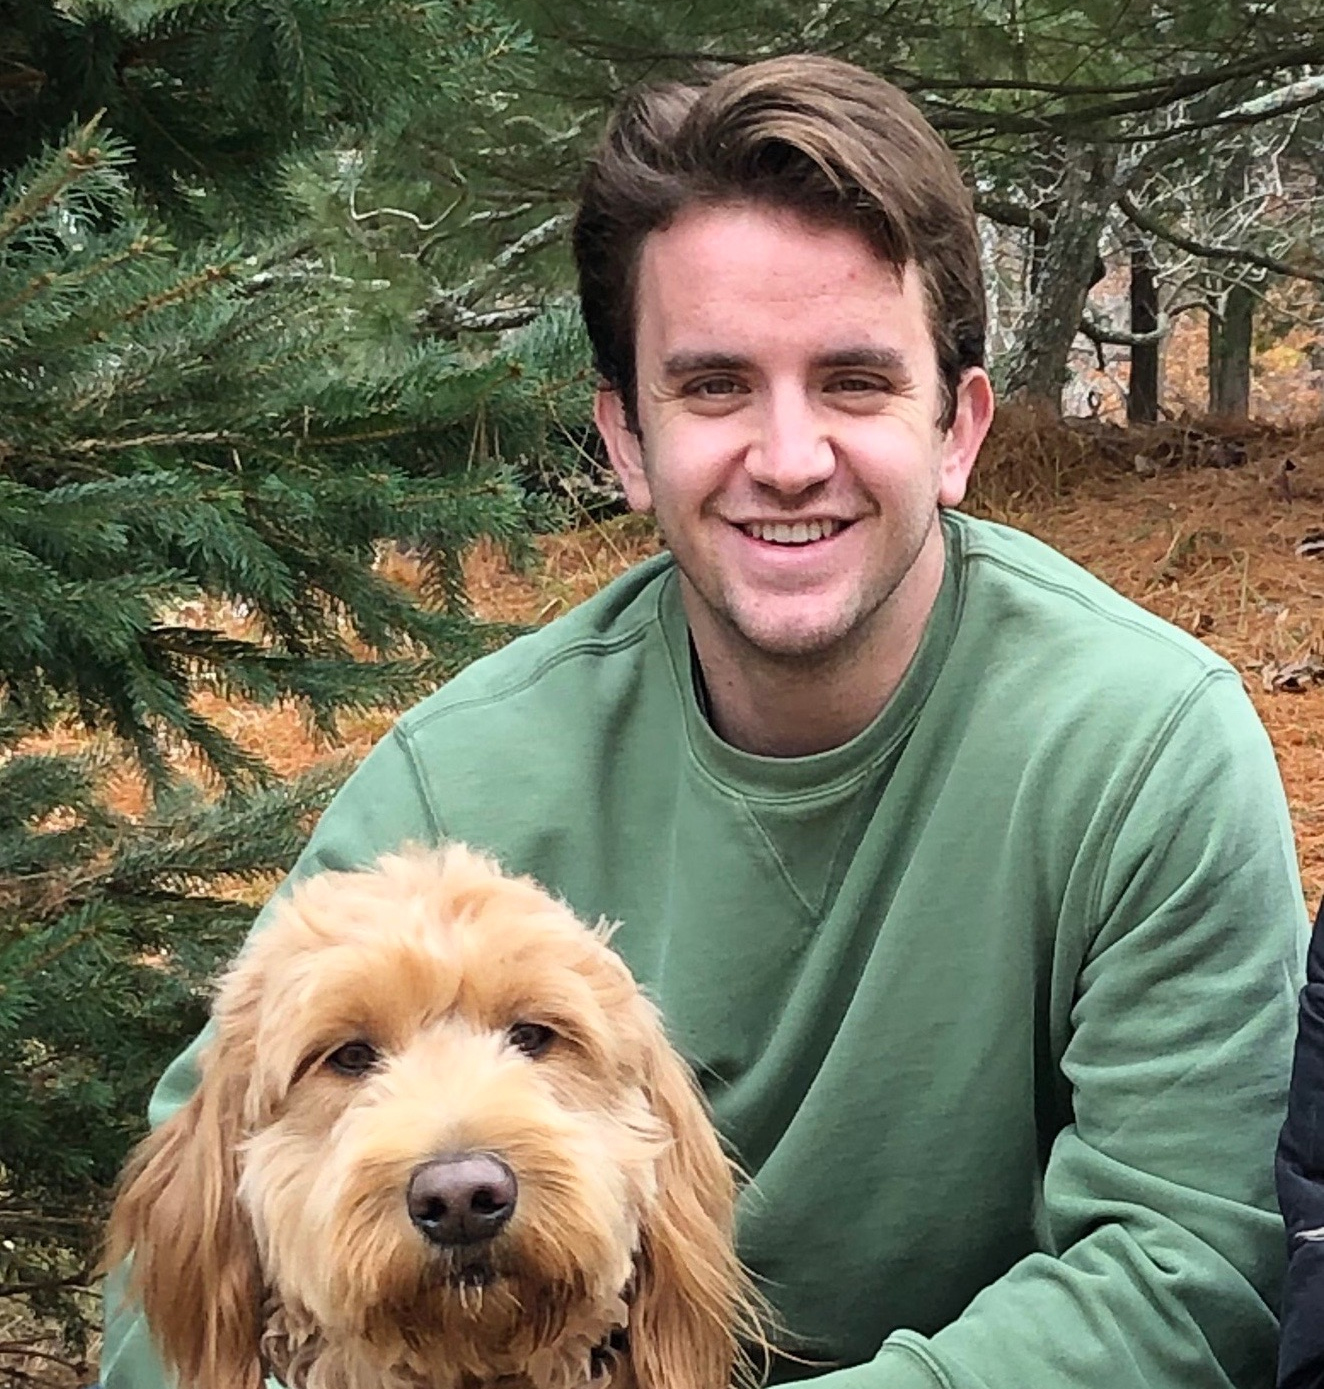 Peter Addison, fourth-year undergraduate and May 2020 candidate for graduation from the School of Physics, and Lucy, the family goldendoodle.